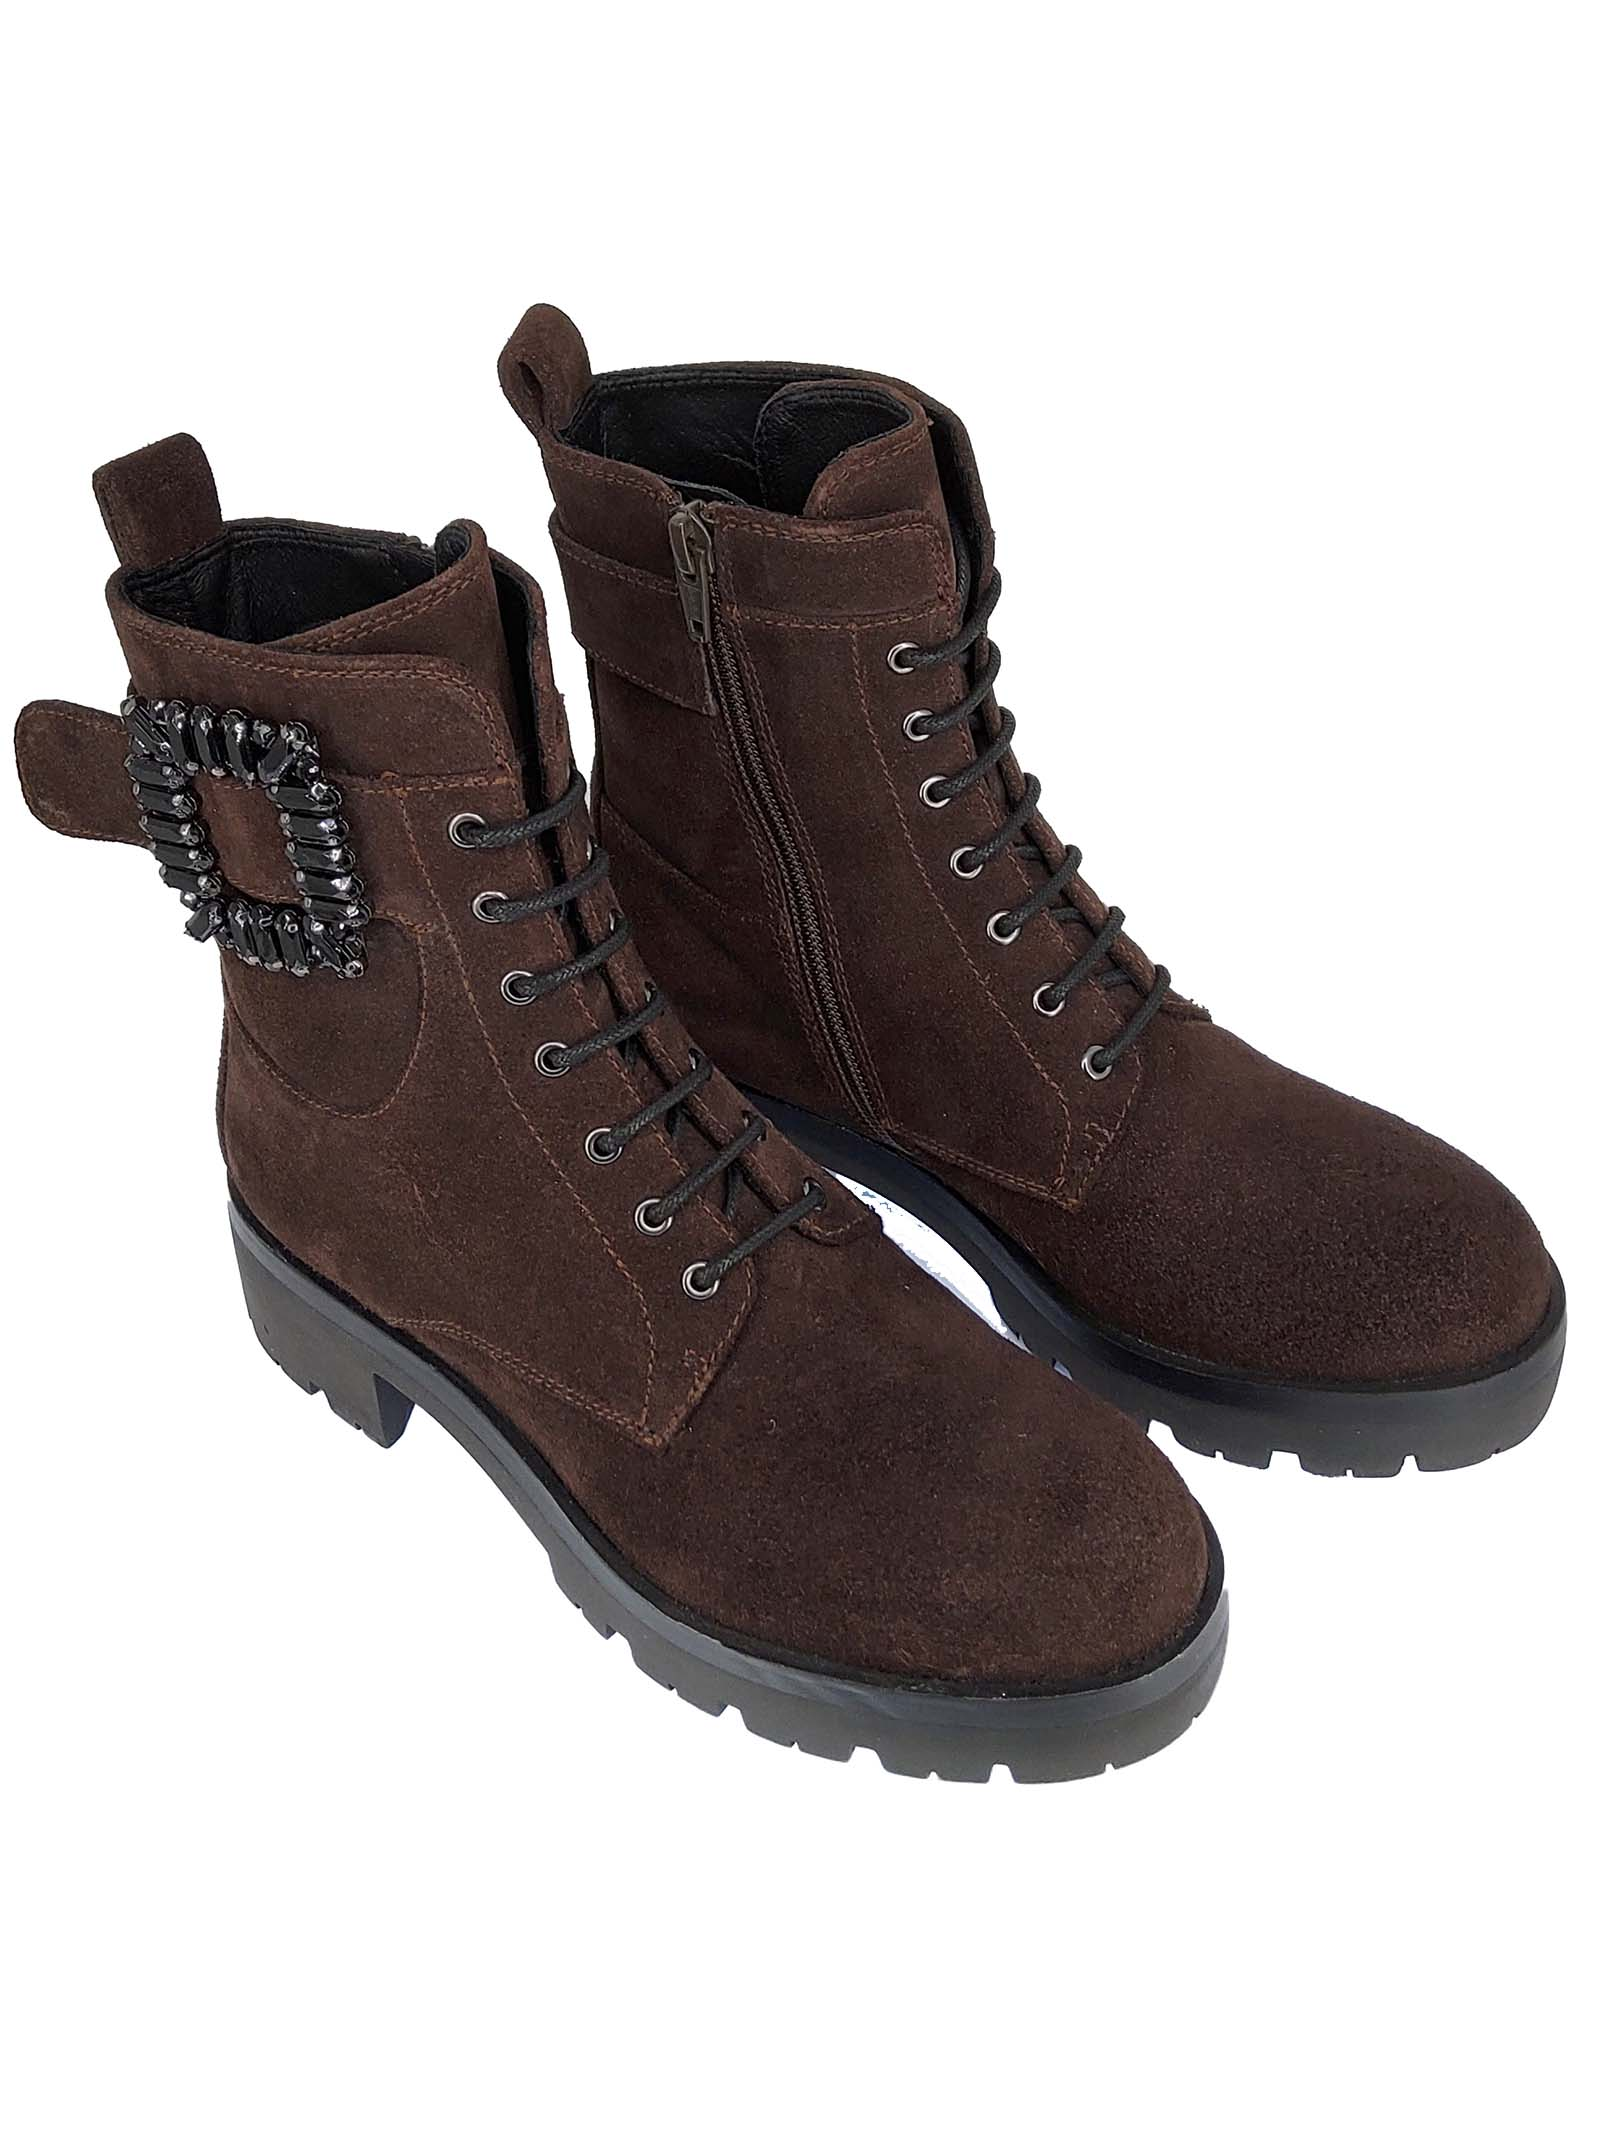 Women's Shoes Gao Ely Amphibius Boots in Brown Suede with Buckle and Side Strap and and Rubber Tank Sole Bruno Premi | Ankle Boots | BC0501X013